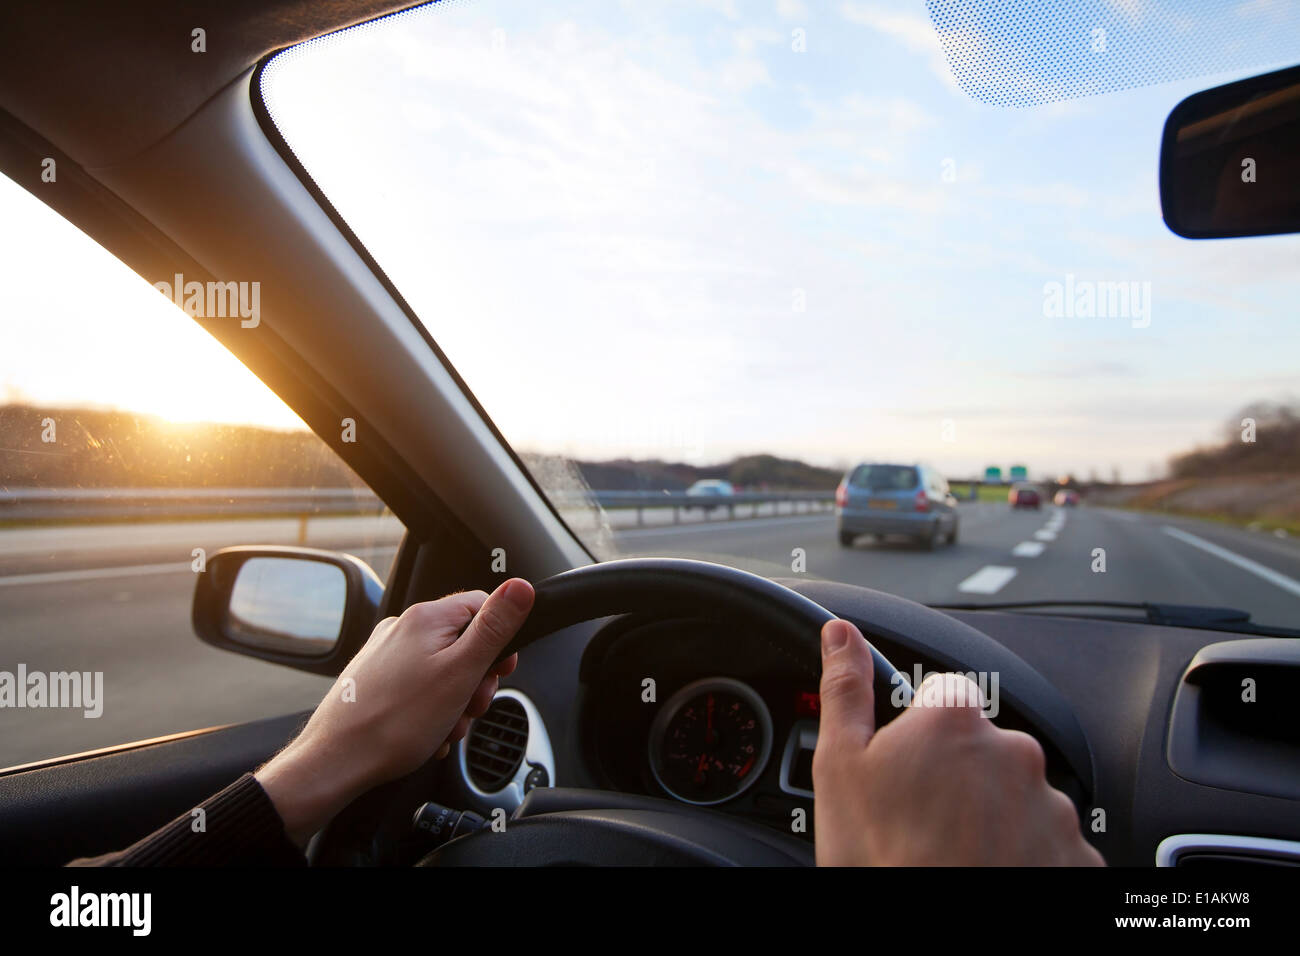 driving on highway - Stock Image